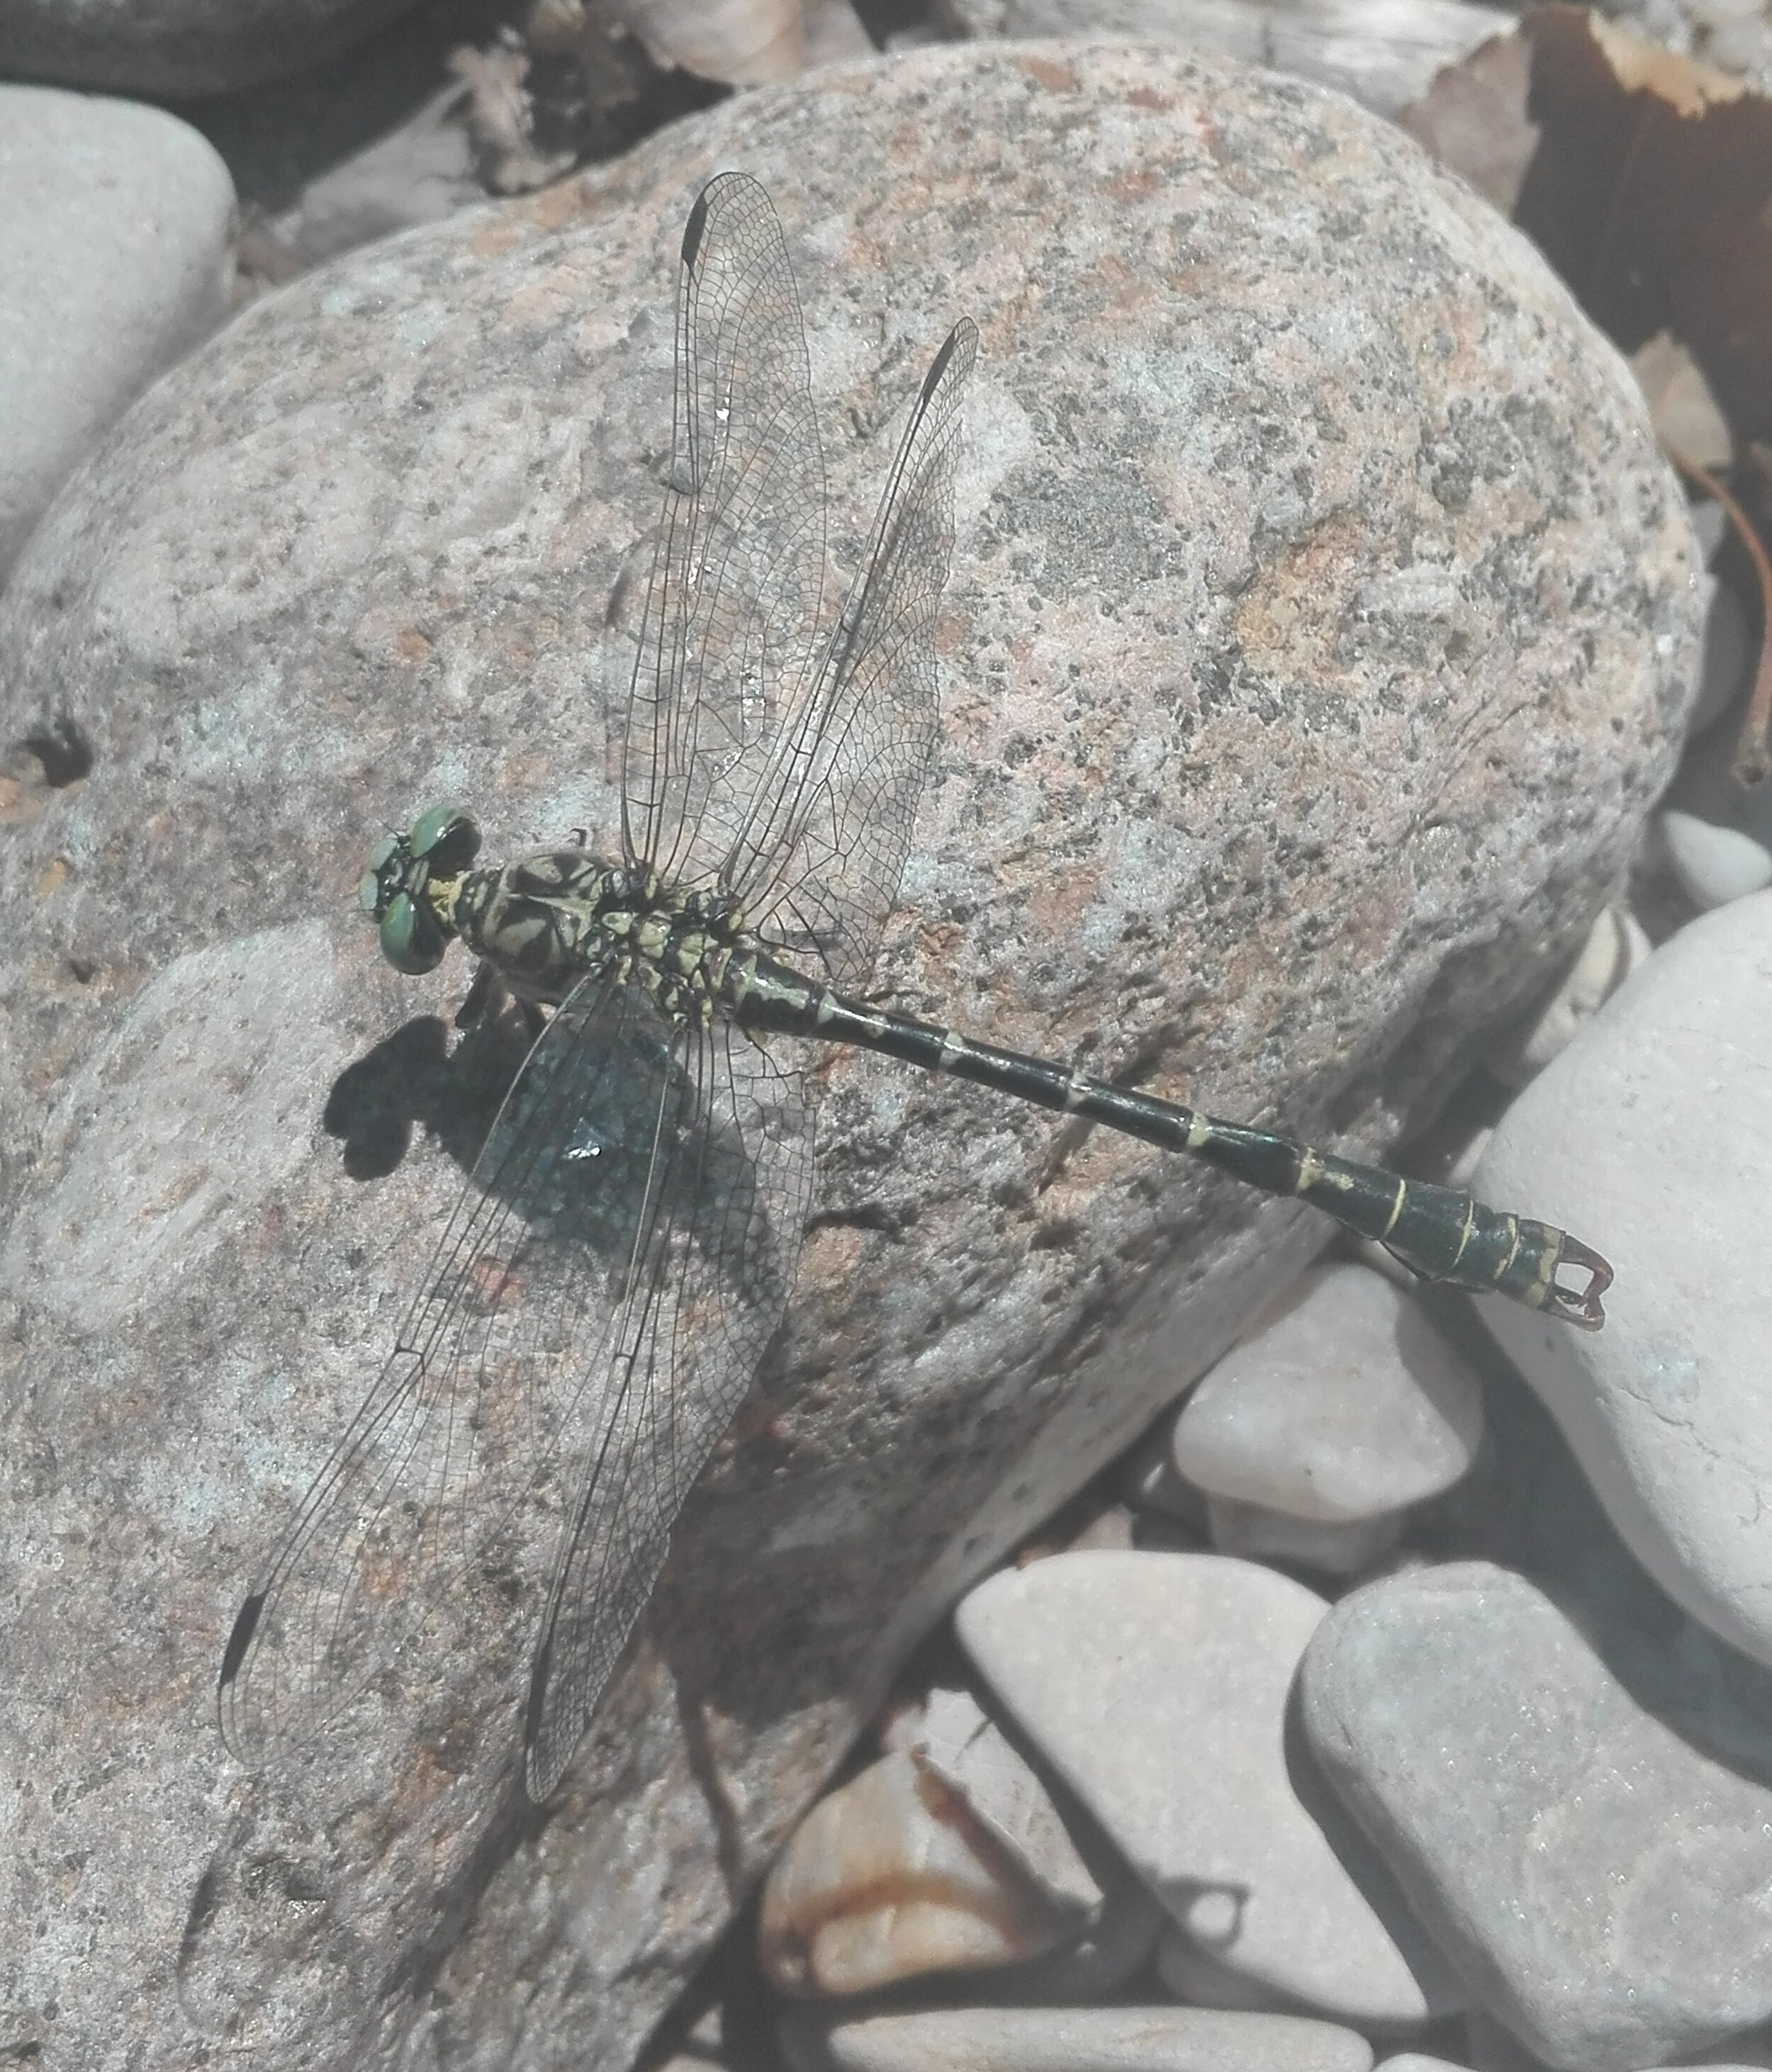 Small Pincertail Dragonfly (Onychogomphus forcipatus)